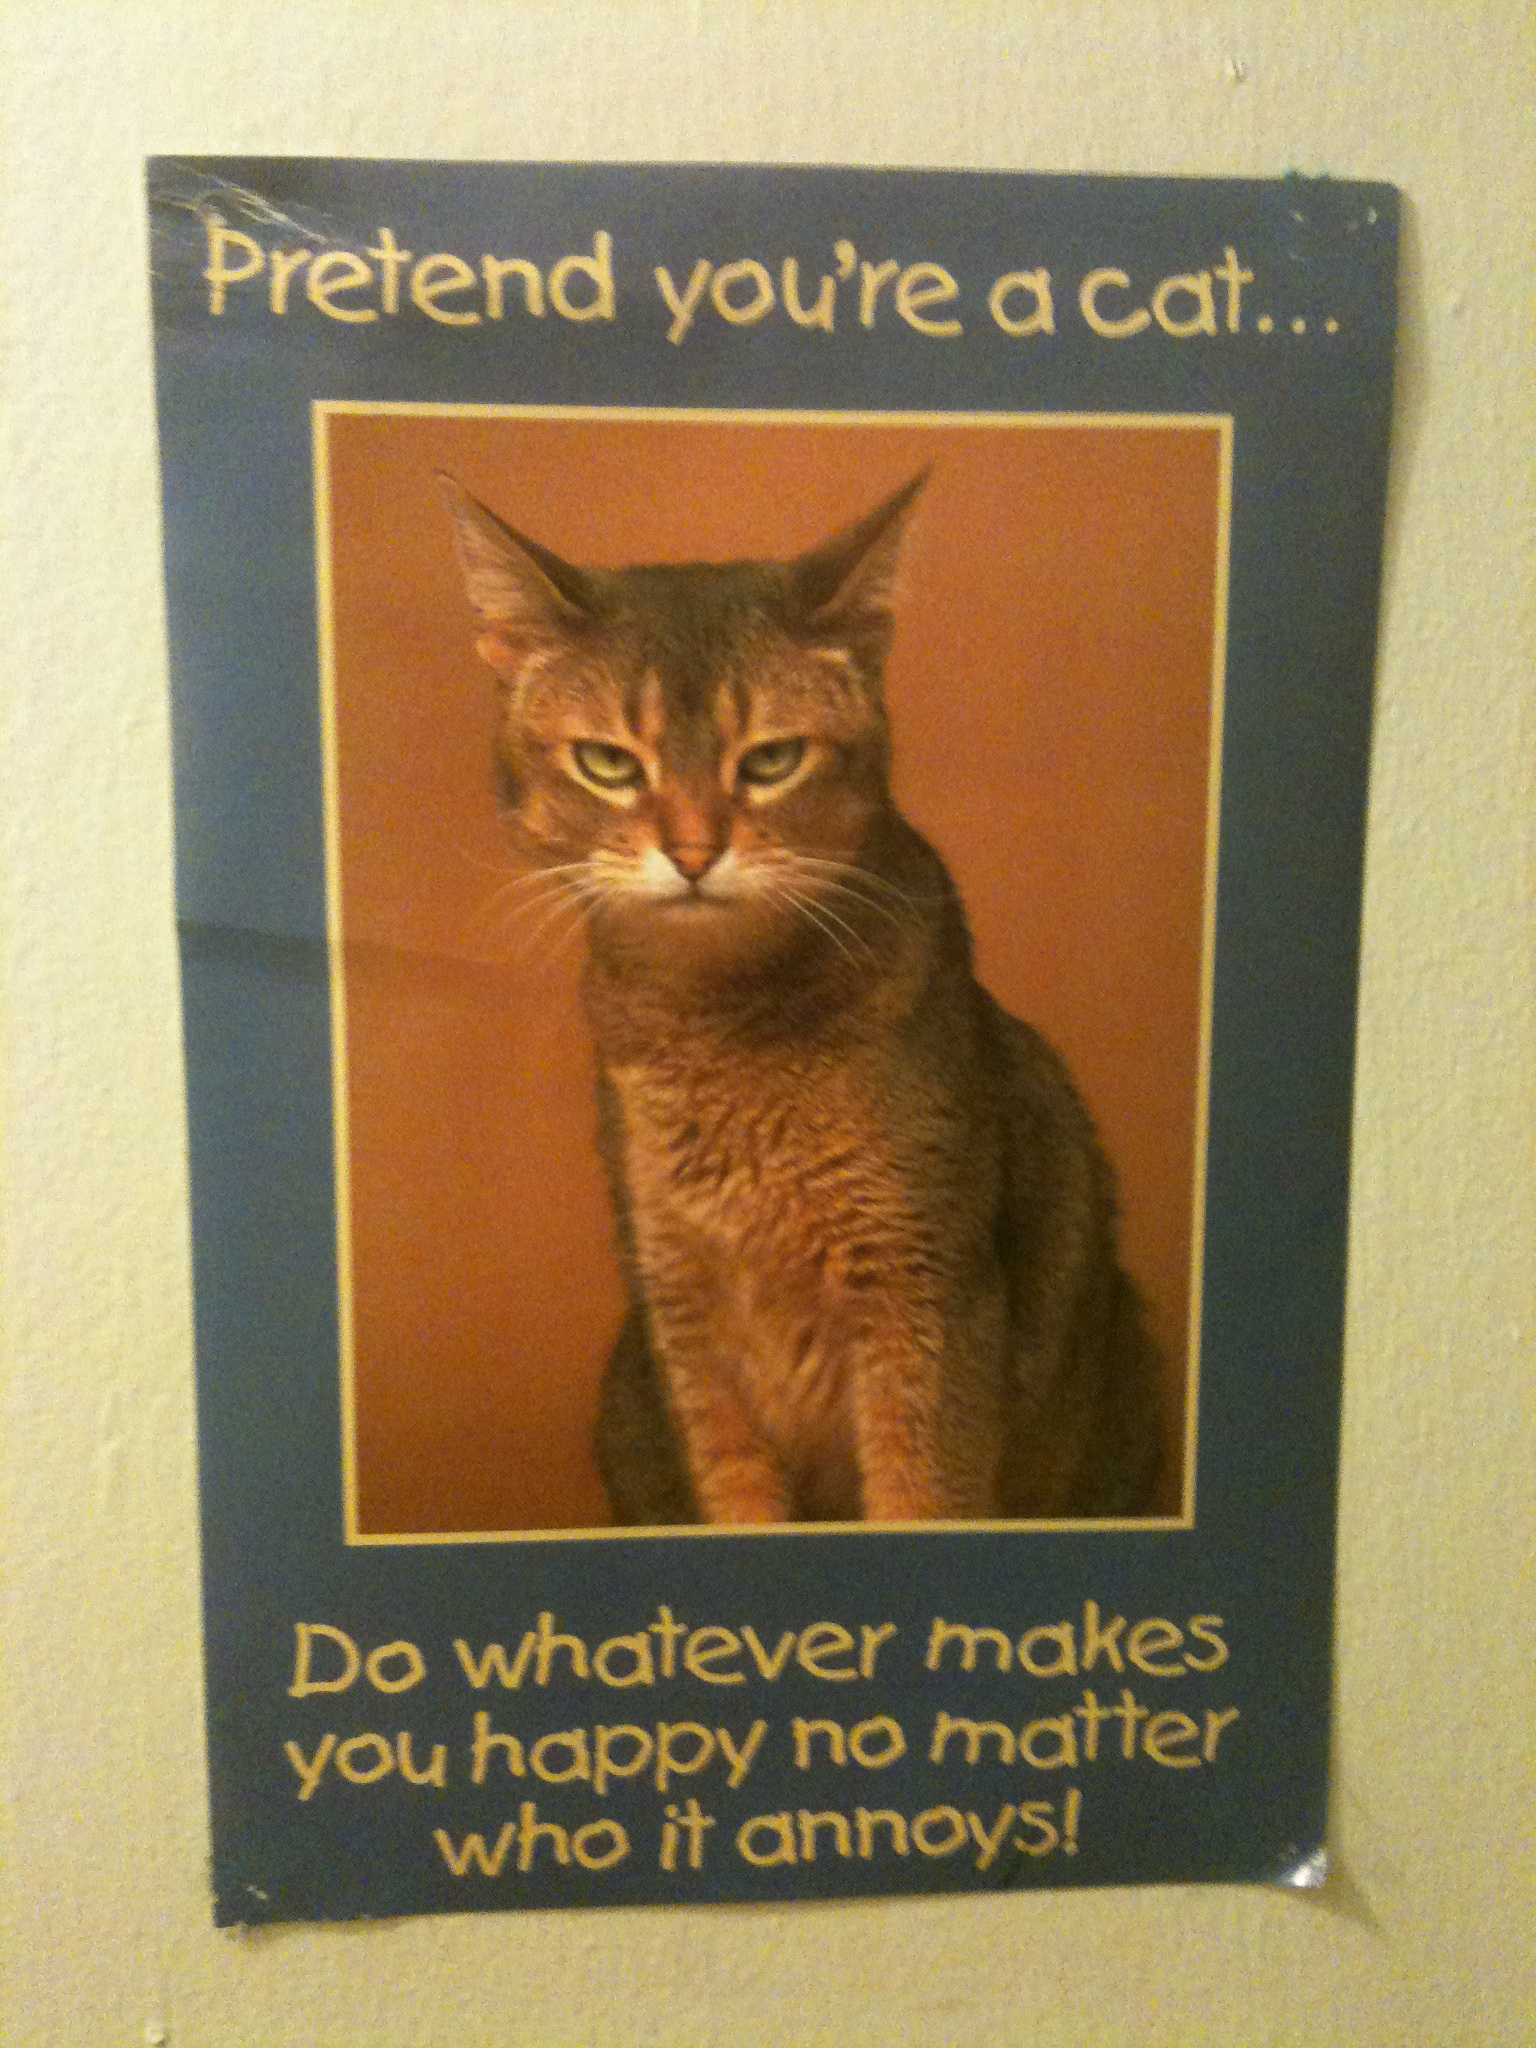 This is on the closet door just to the left of the cat wall.